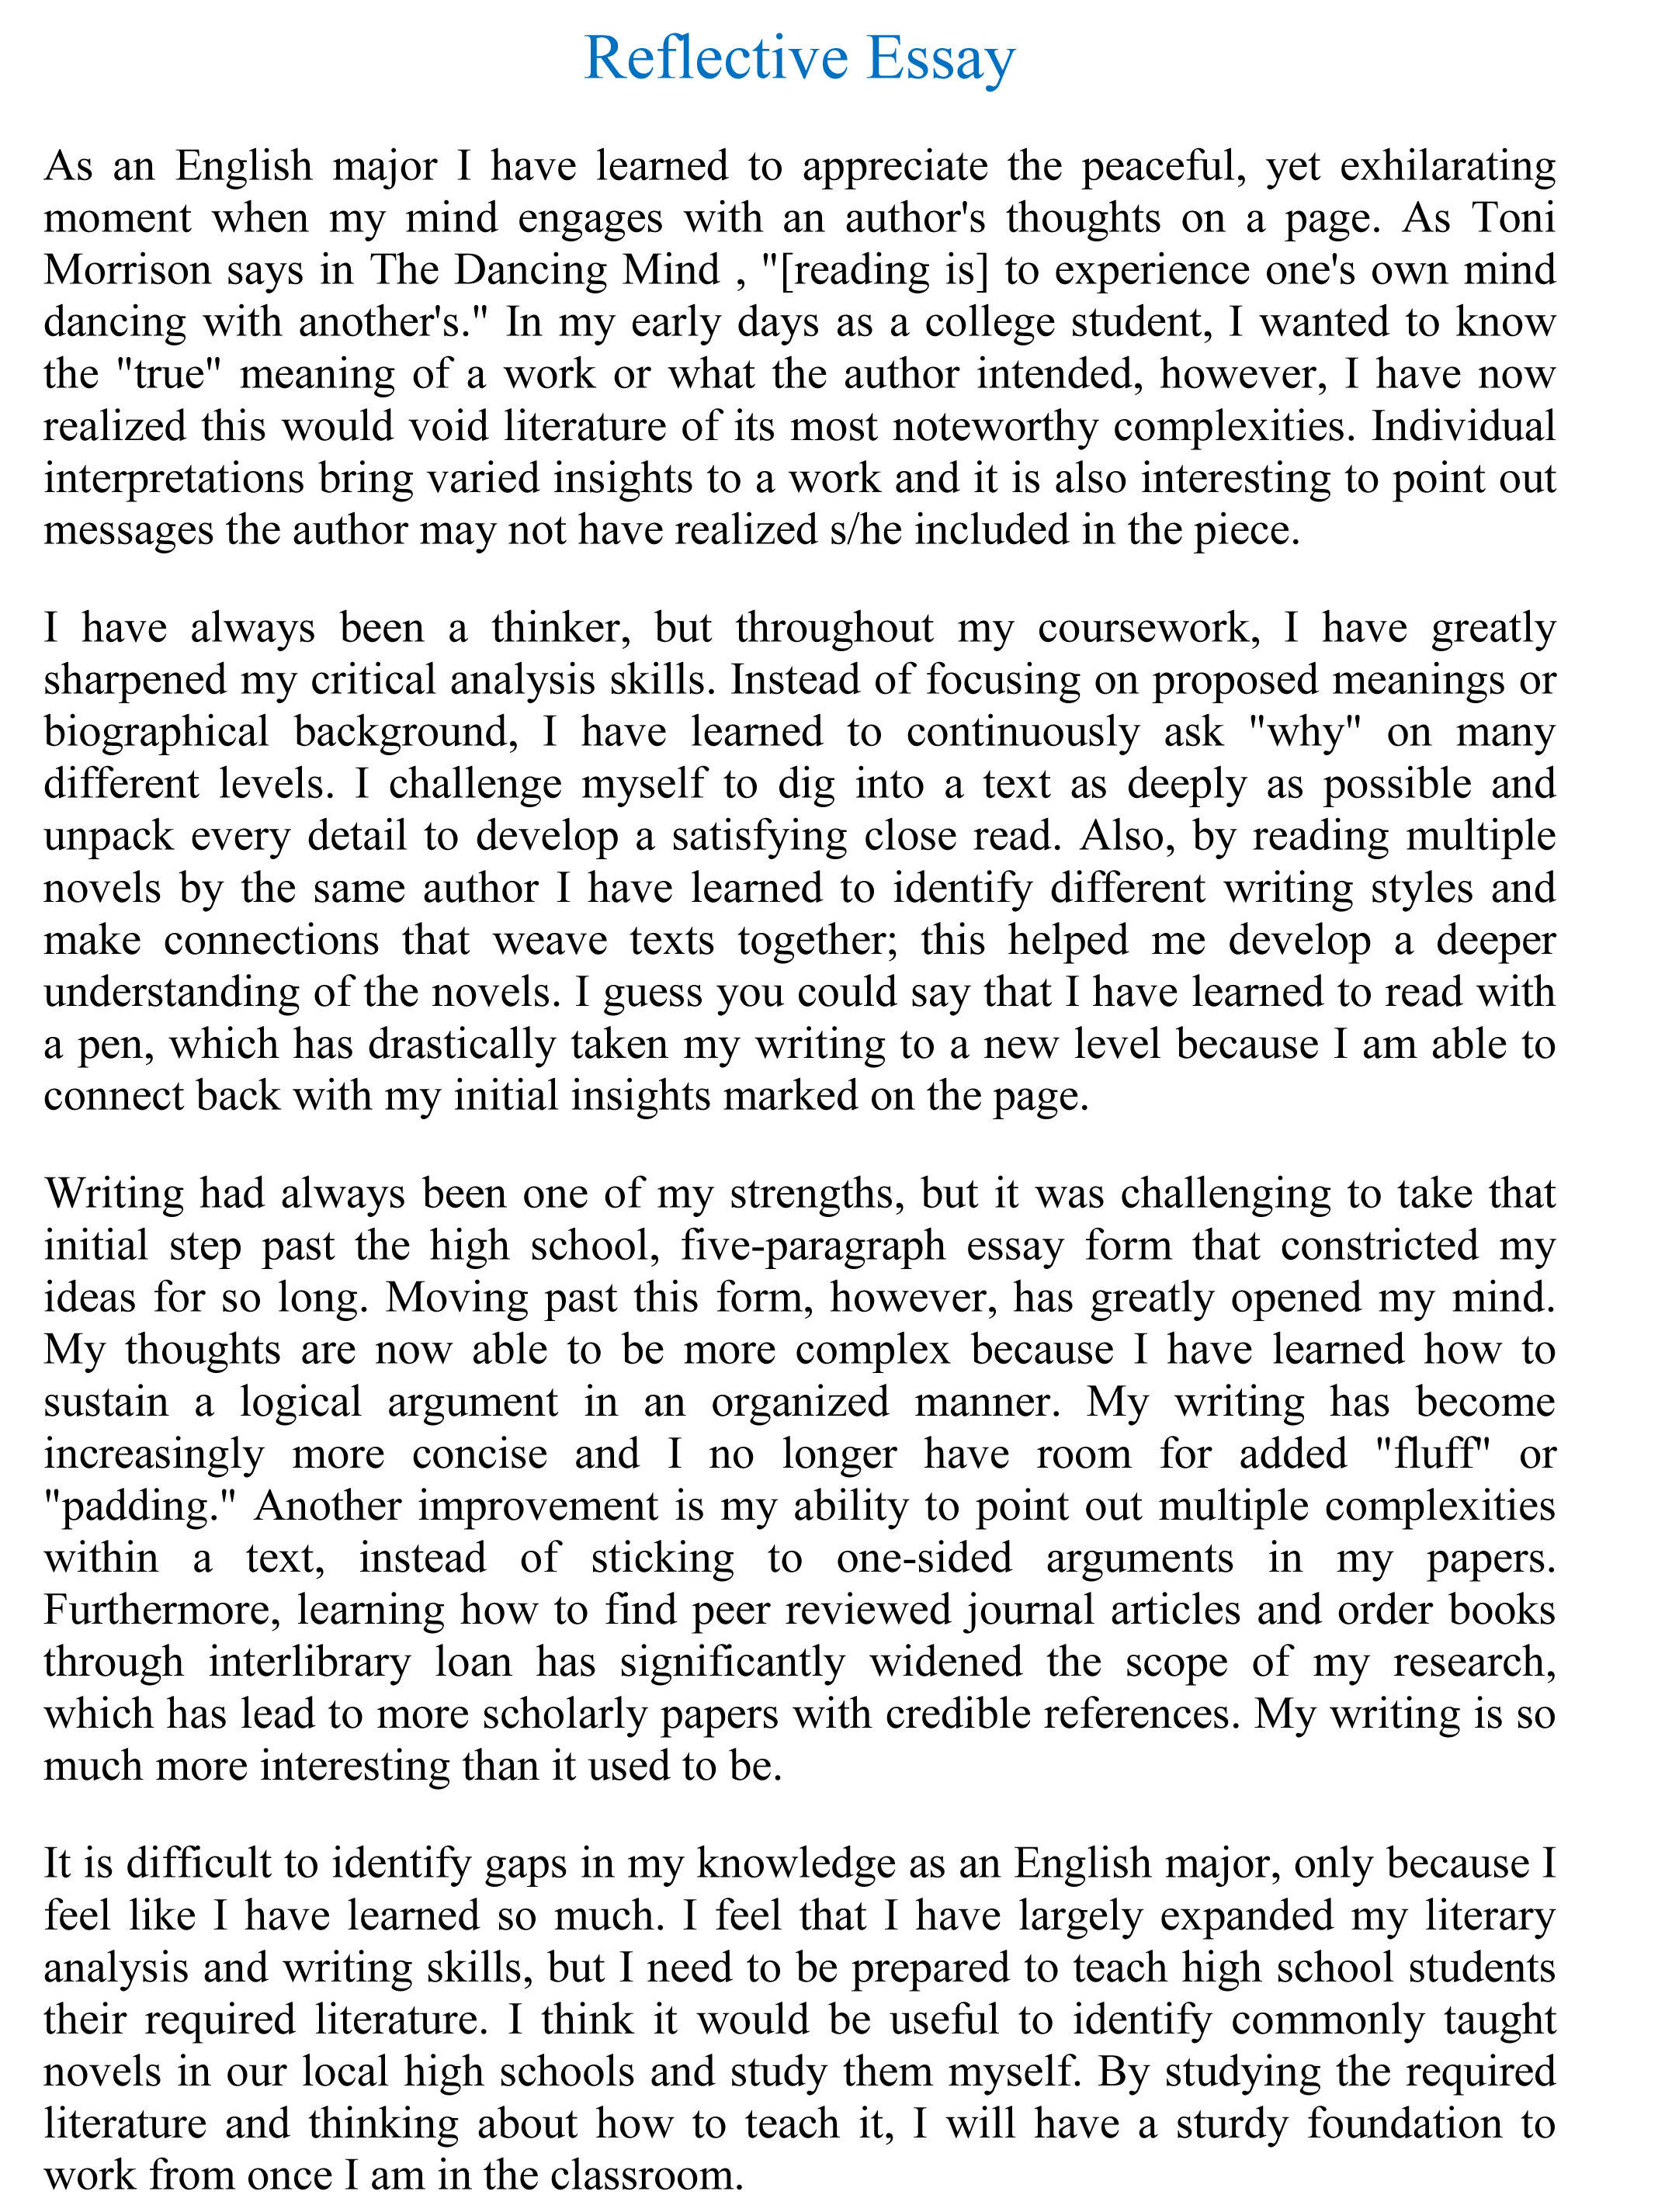 alexander the great essay help scholarship essays help write  long essays how long should essays be essay writing service long long essaysgreat research paper topics was alexander the great